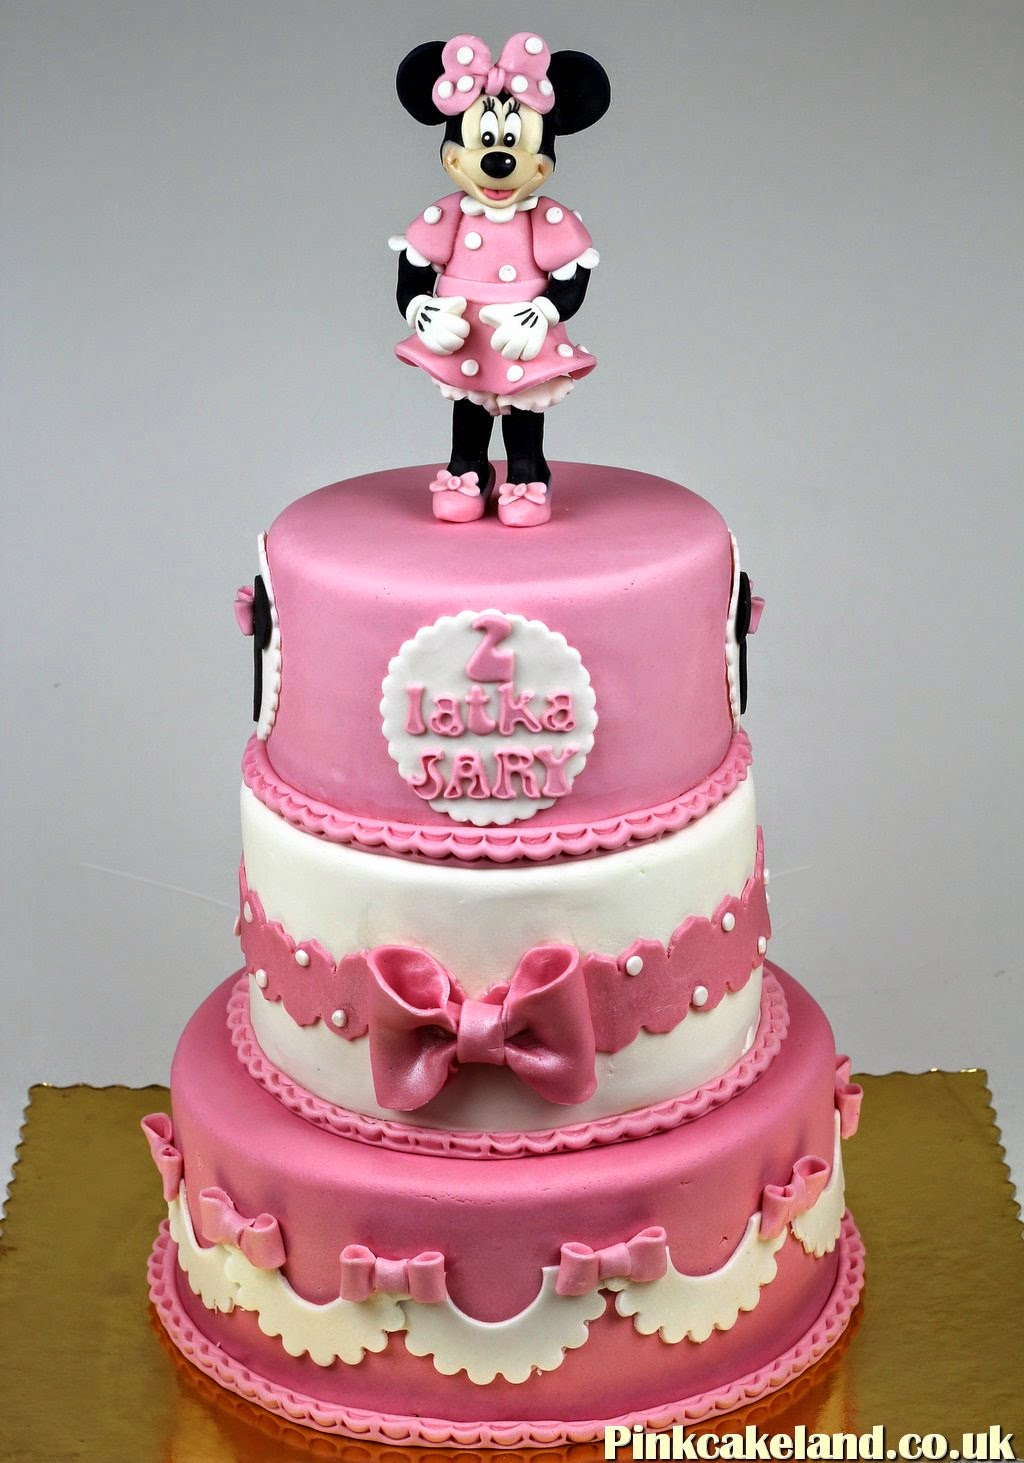 Minnie Mouse Cake, Woking